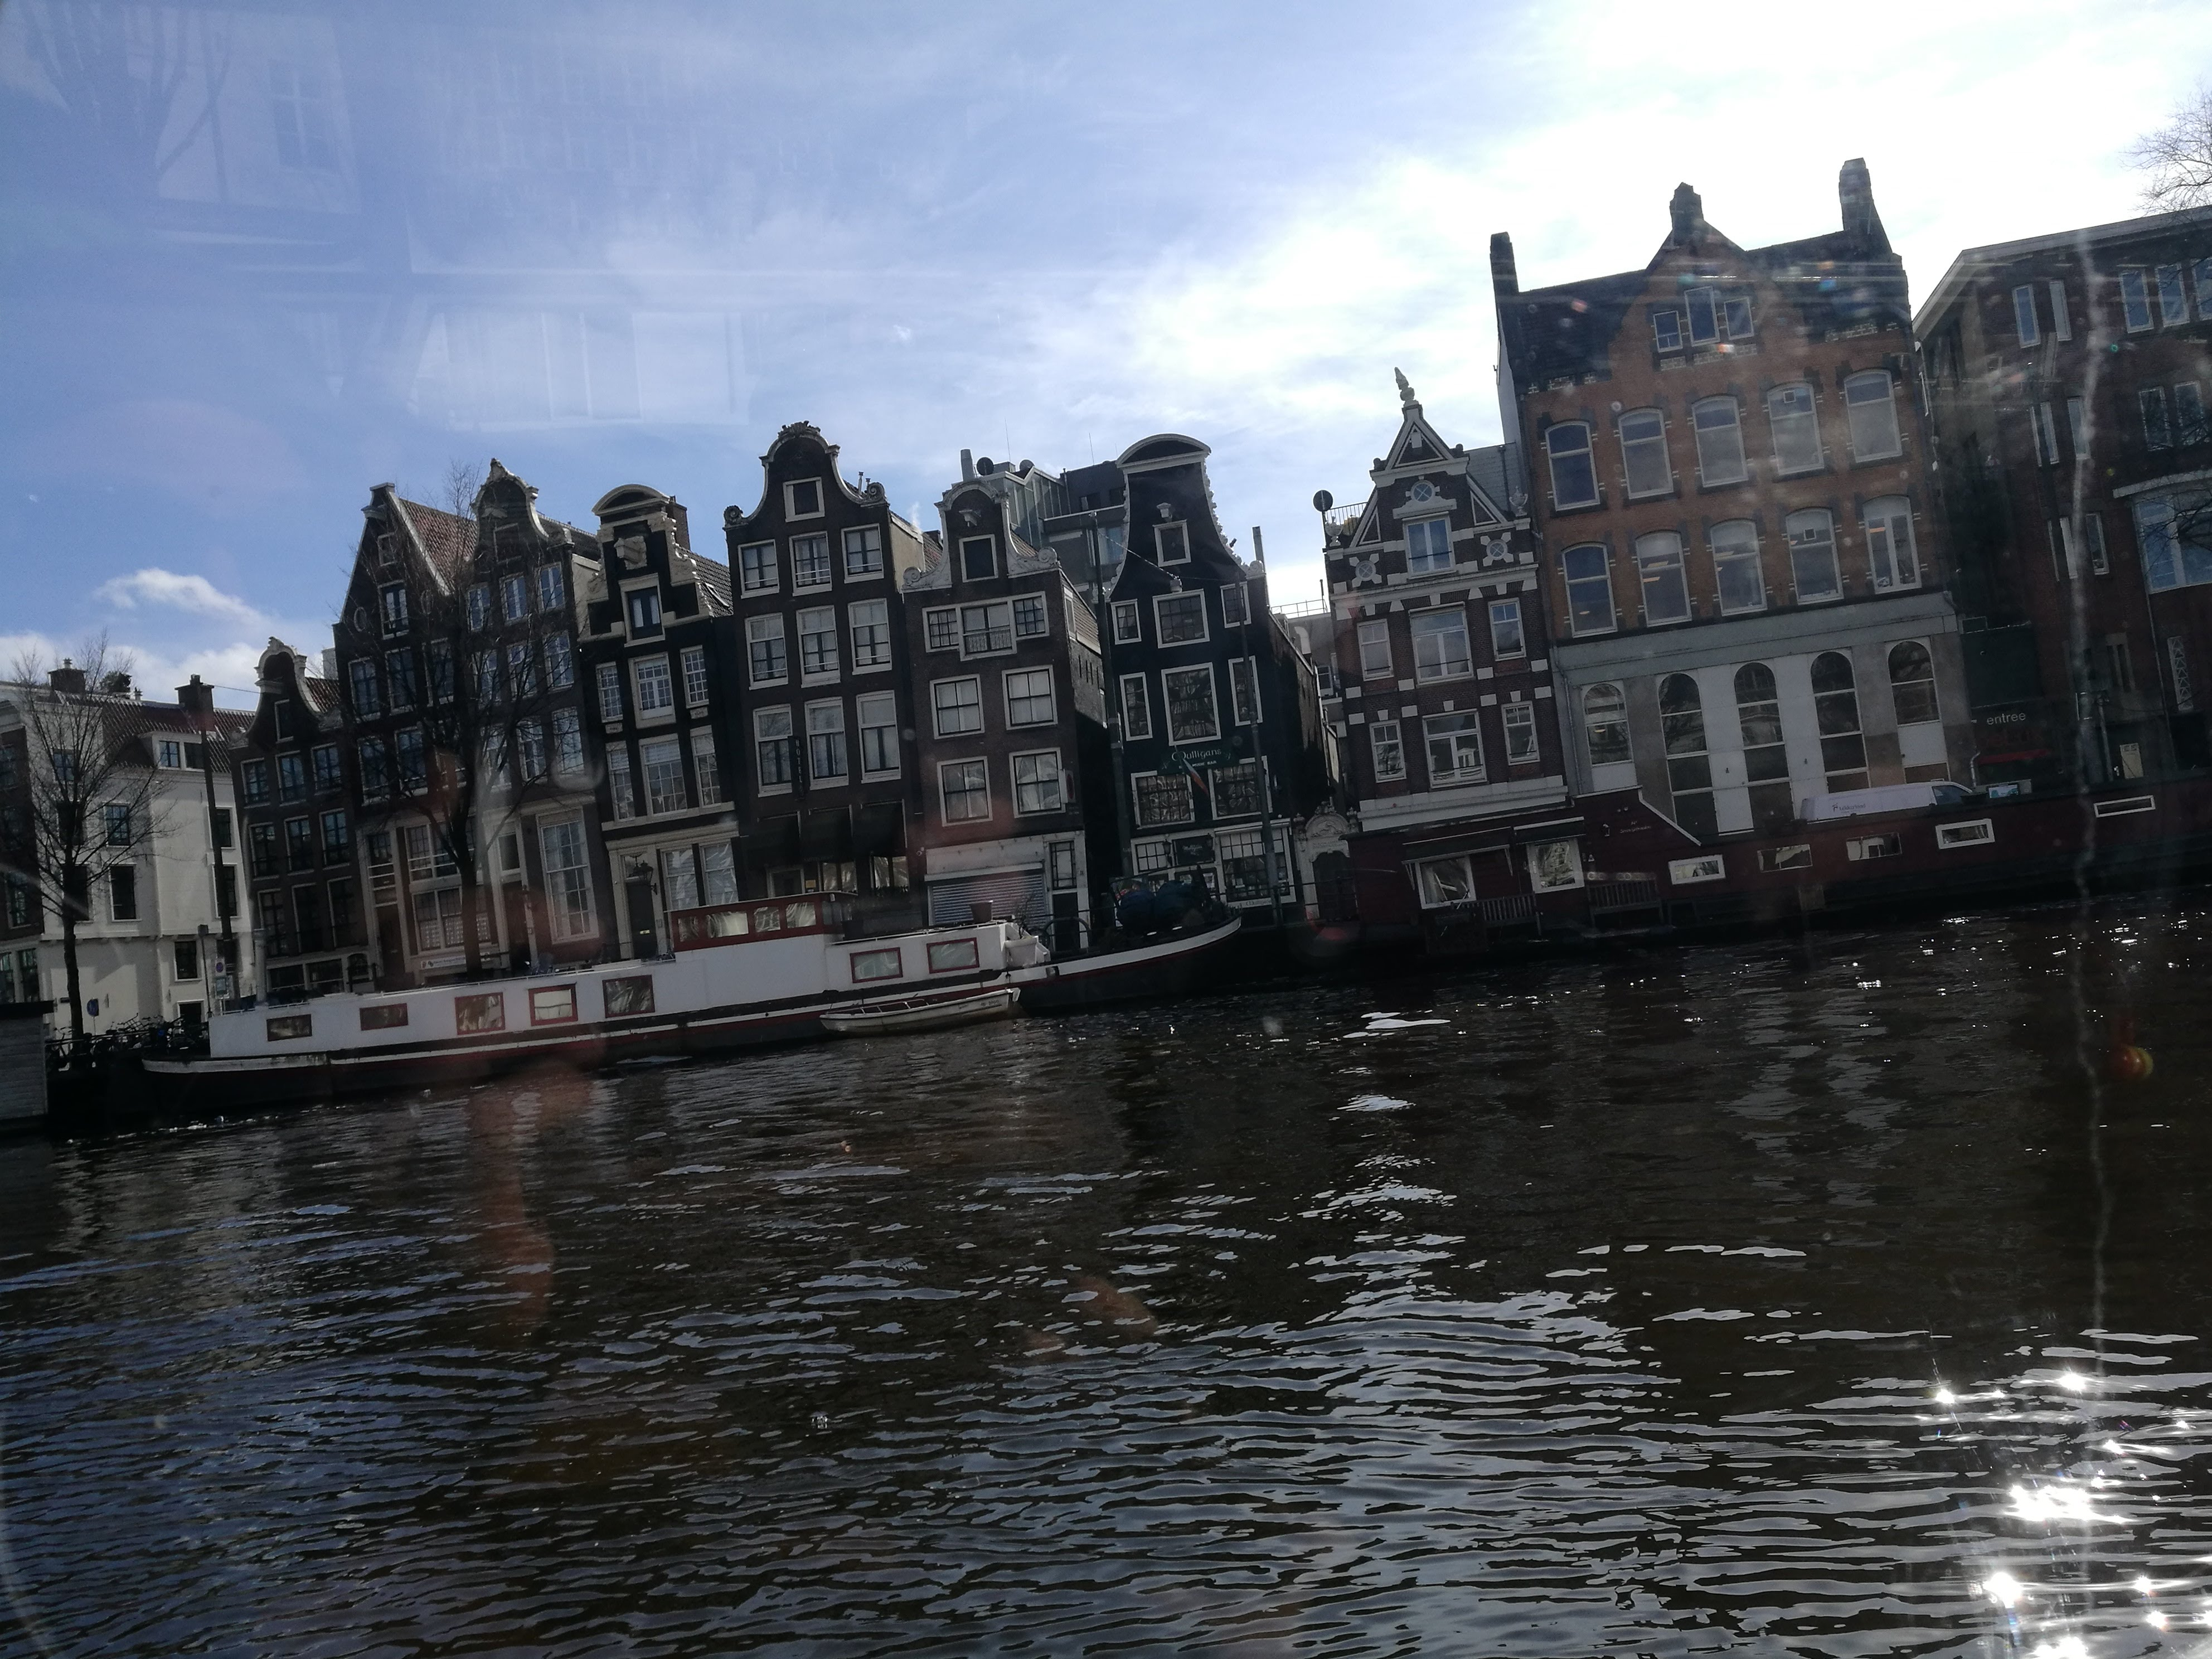 paseo-barco-canales-amsterdam